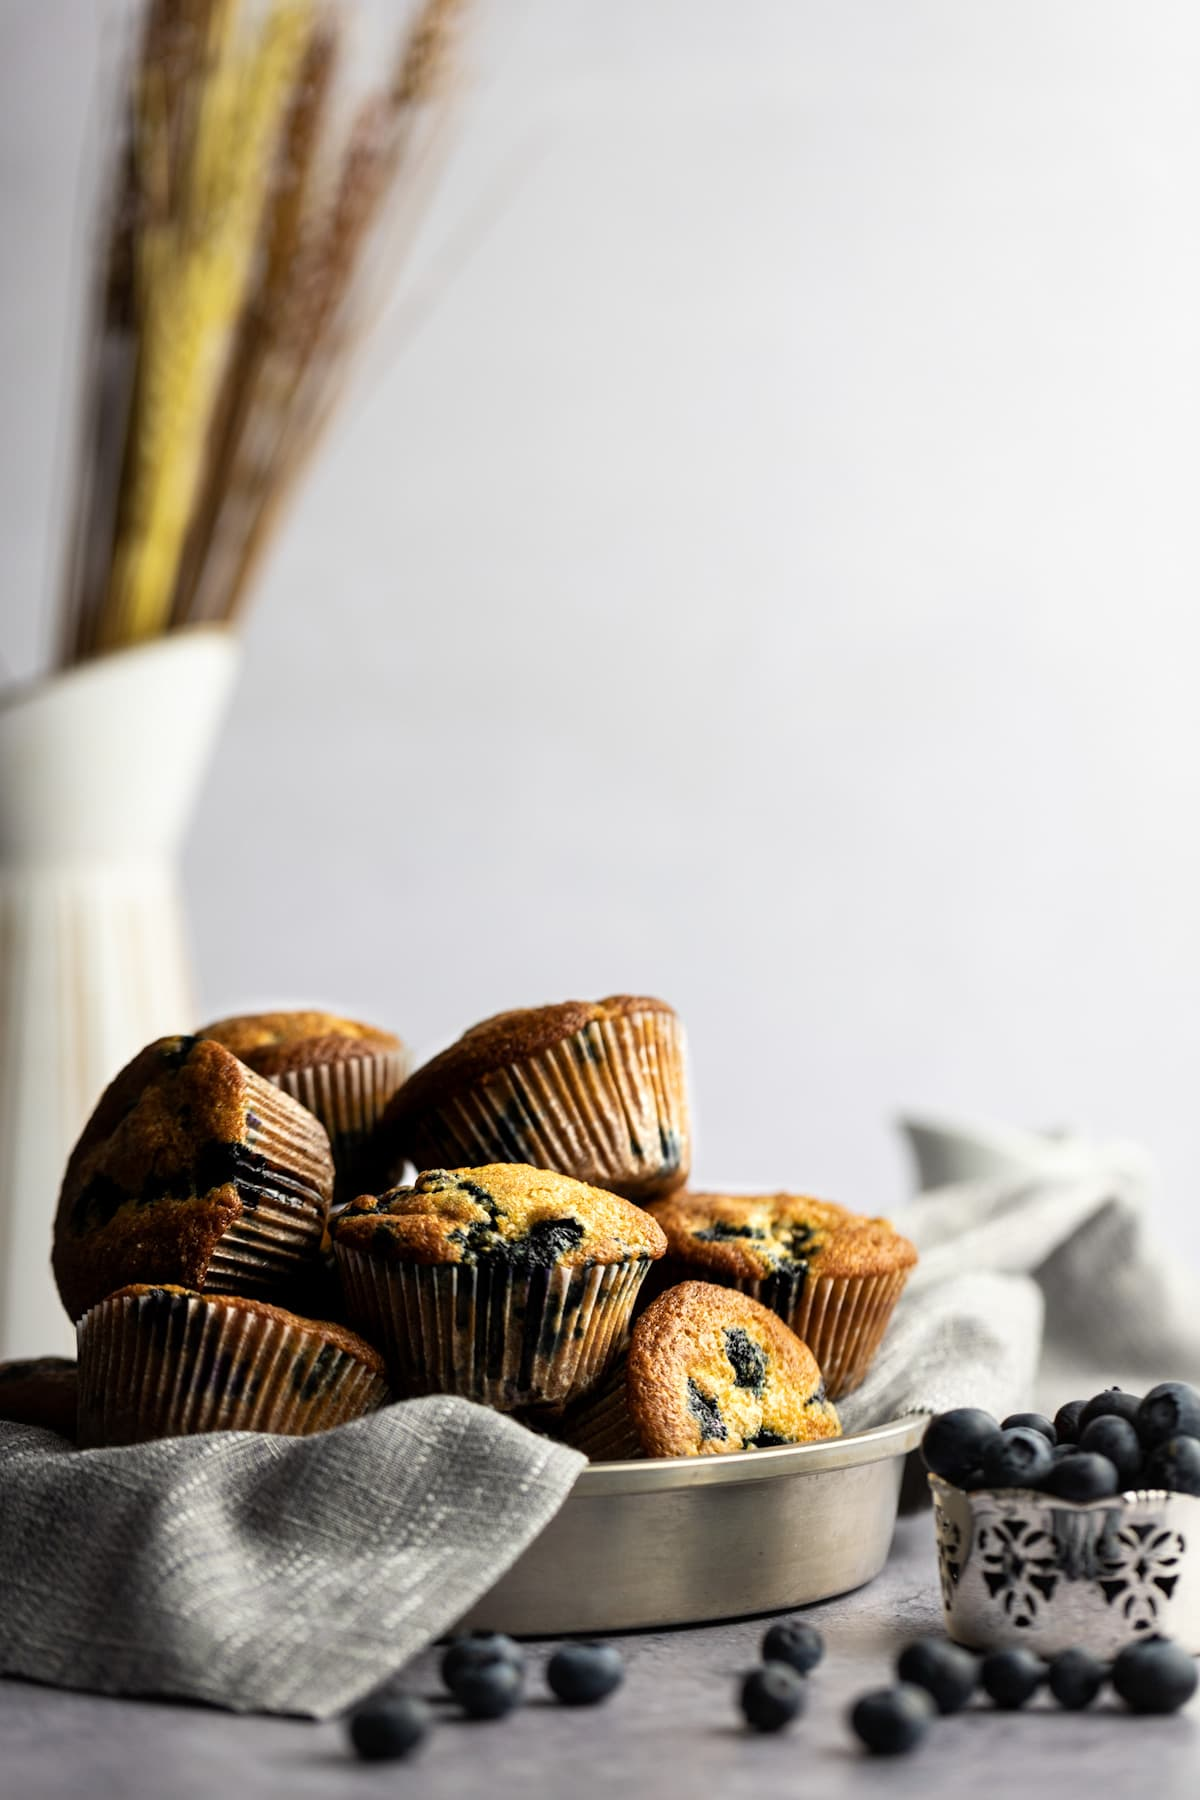 A round metal tin full of a stack of freshly baked golden muffins, next to scattered blueberries, with a white vase holding wheat in the background.